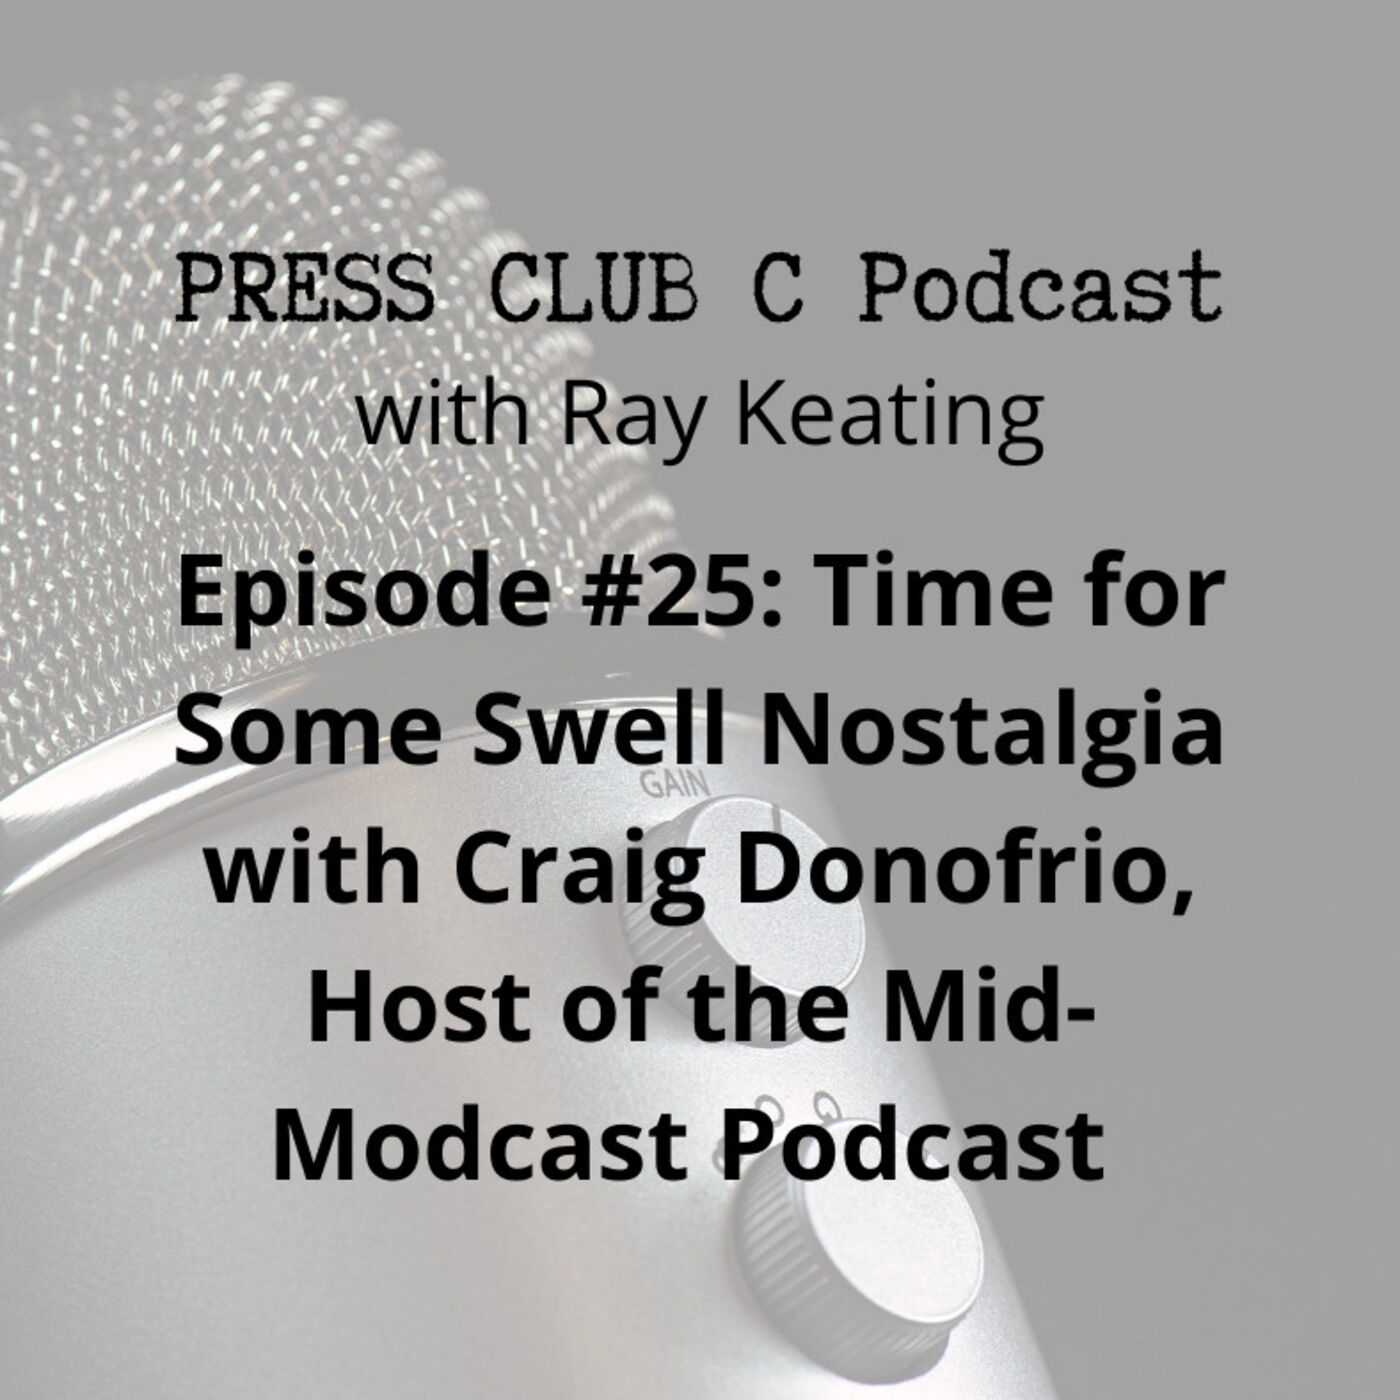 Episode #25: Time for Some Swell Nostalgia with Craig Donofrio, Host of the Mid-Modcast Podcast